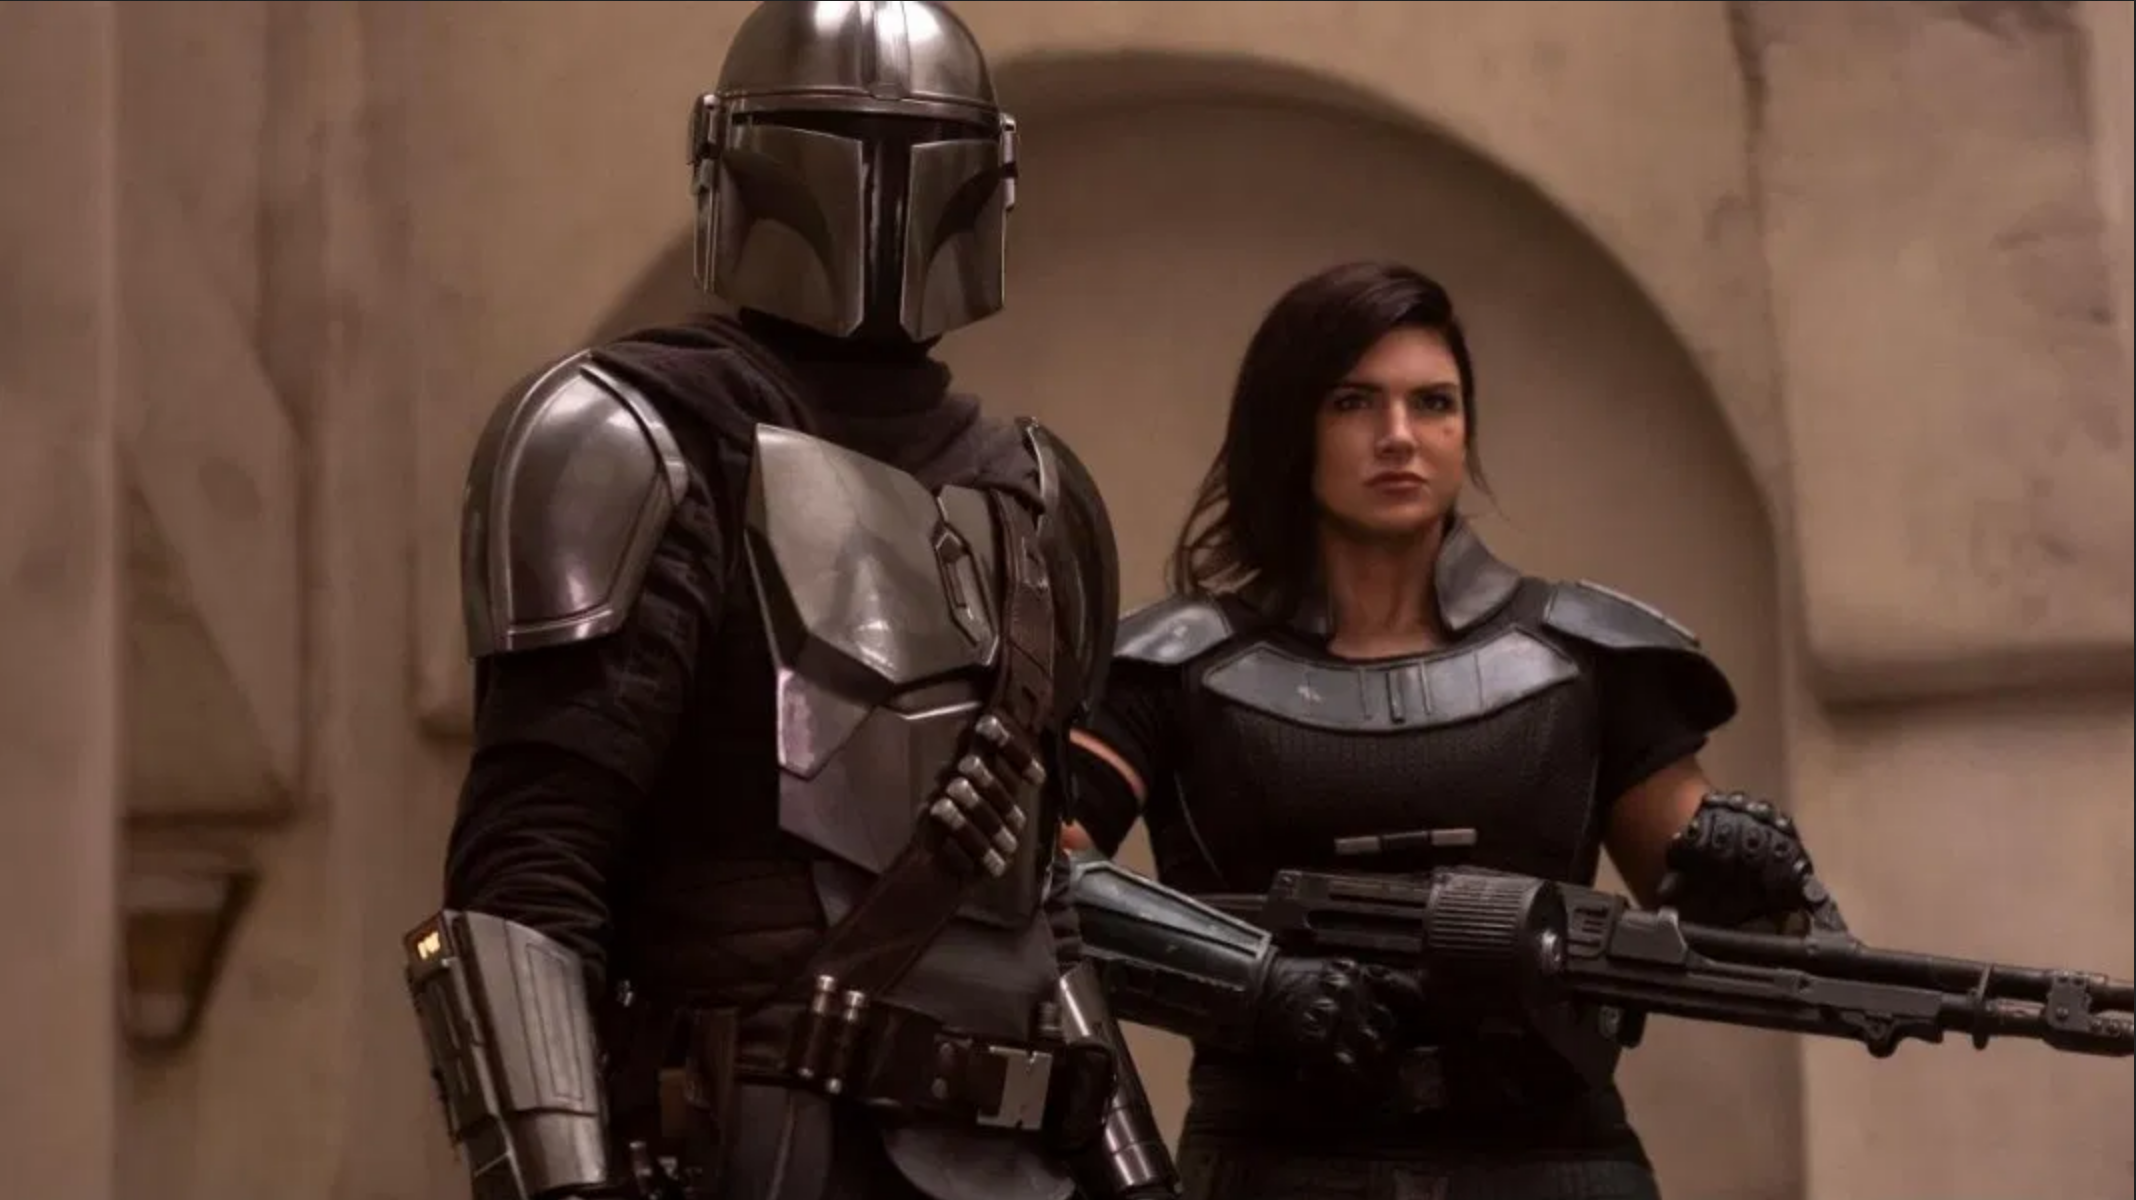 Pedro Pascal as The Mandalorian and Gina Carano as Cara Dune